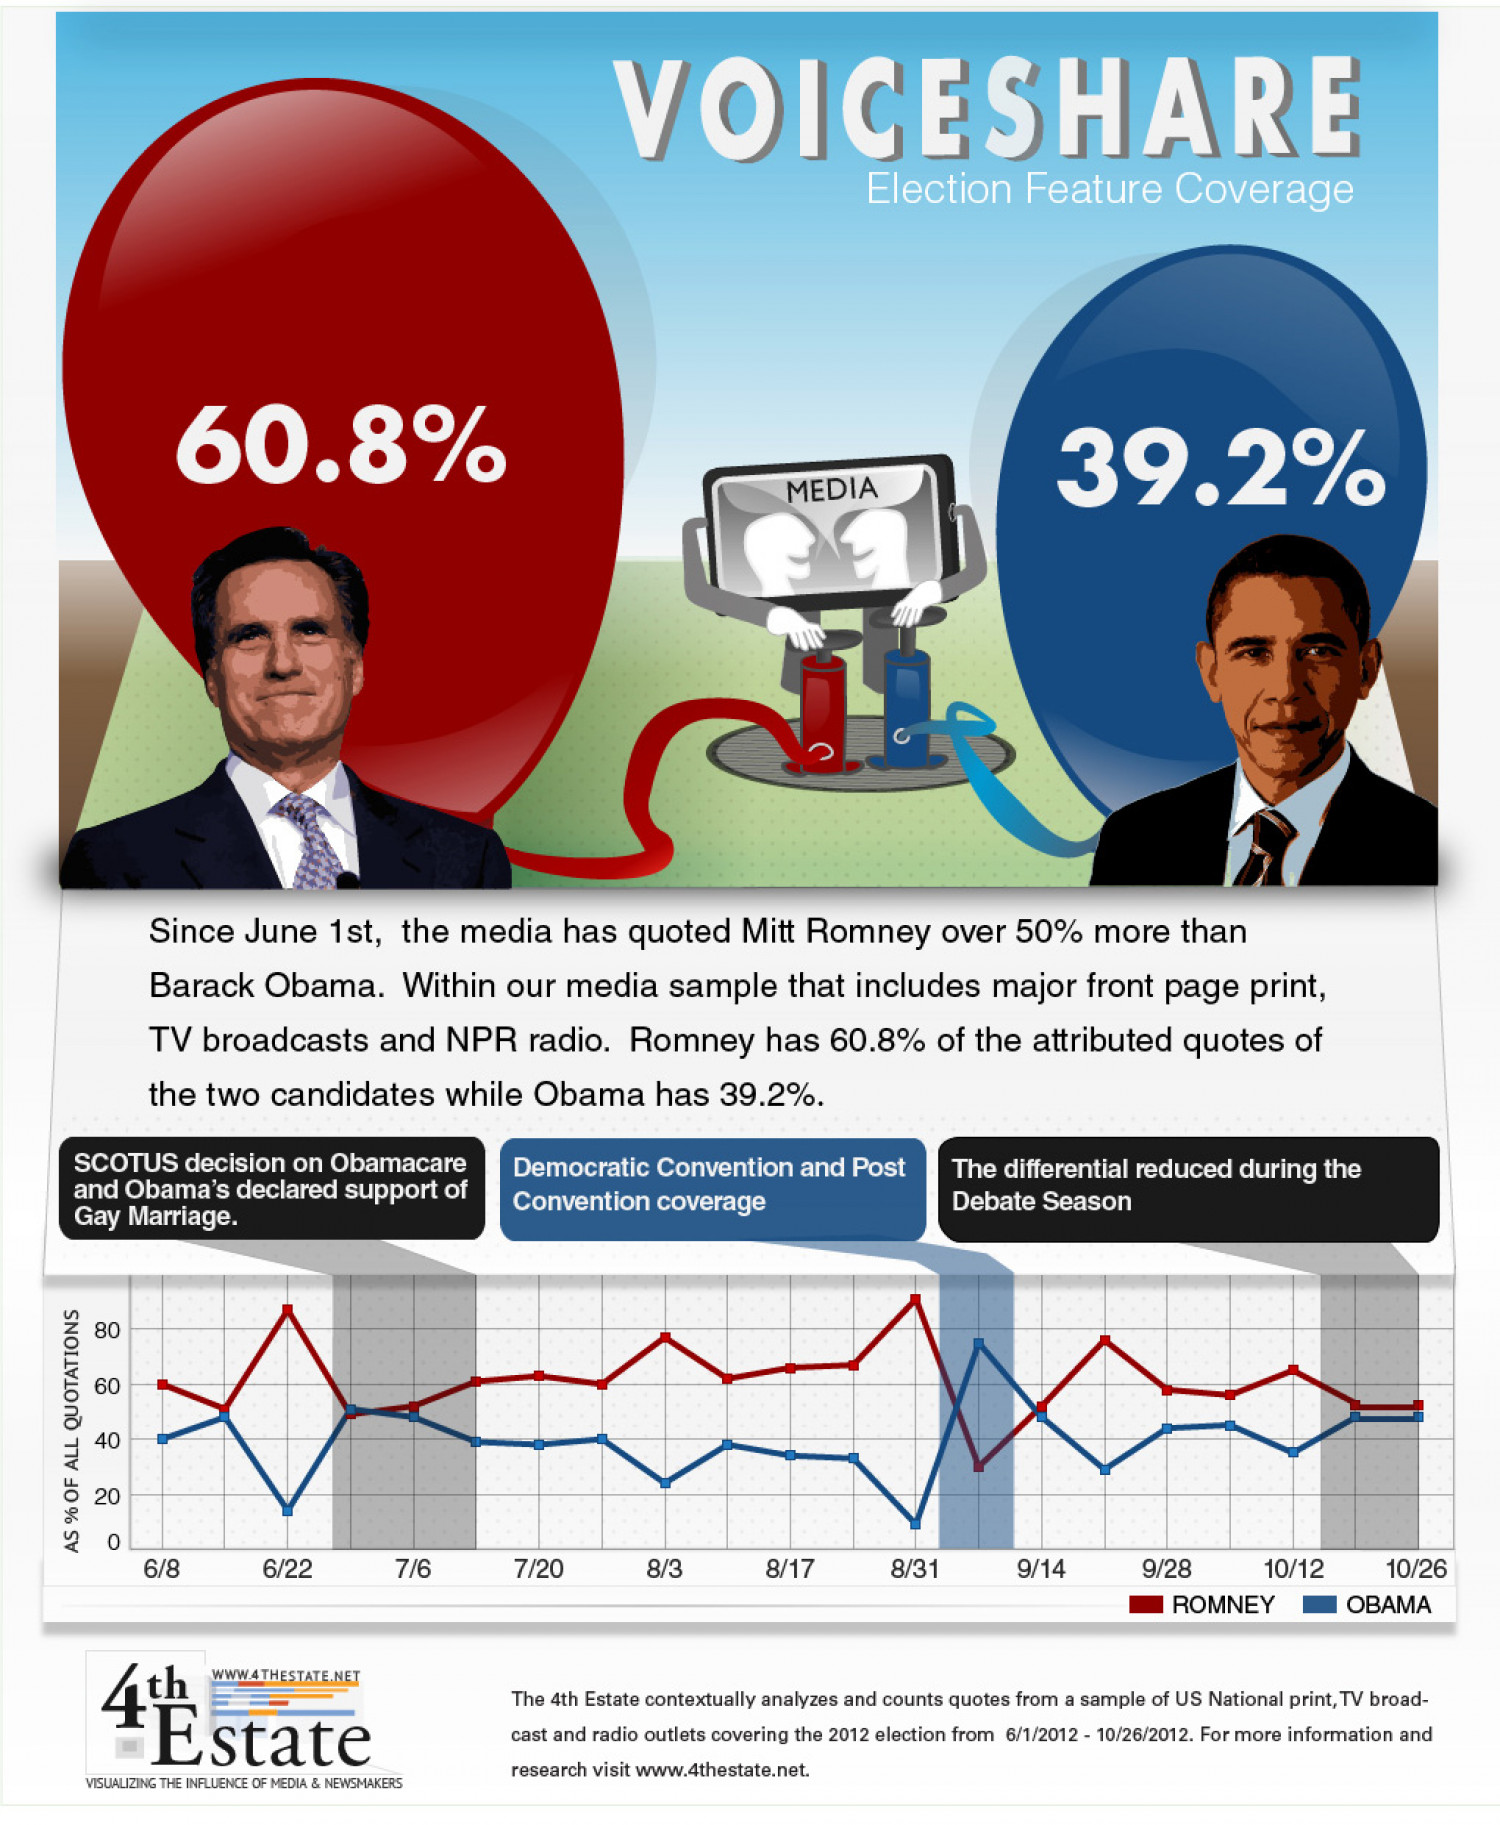 VoiceShare: Comparison of Obama and Romney Coverage in Election 2012 Infographic